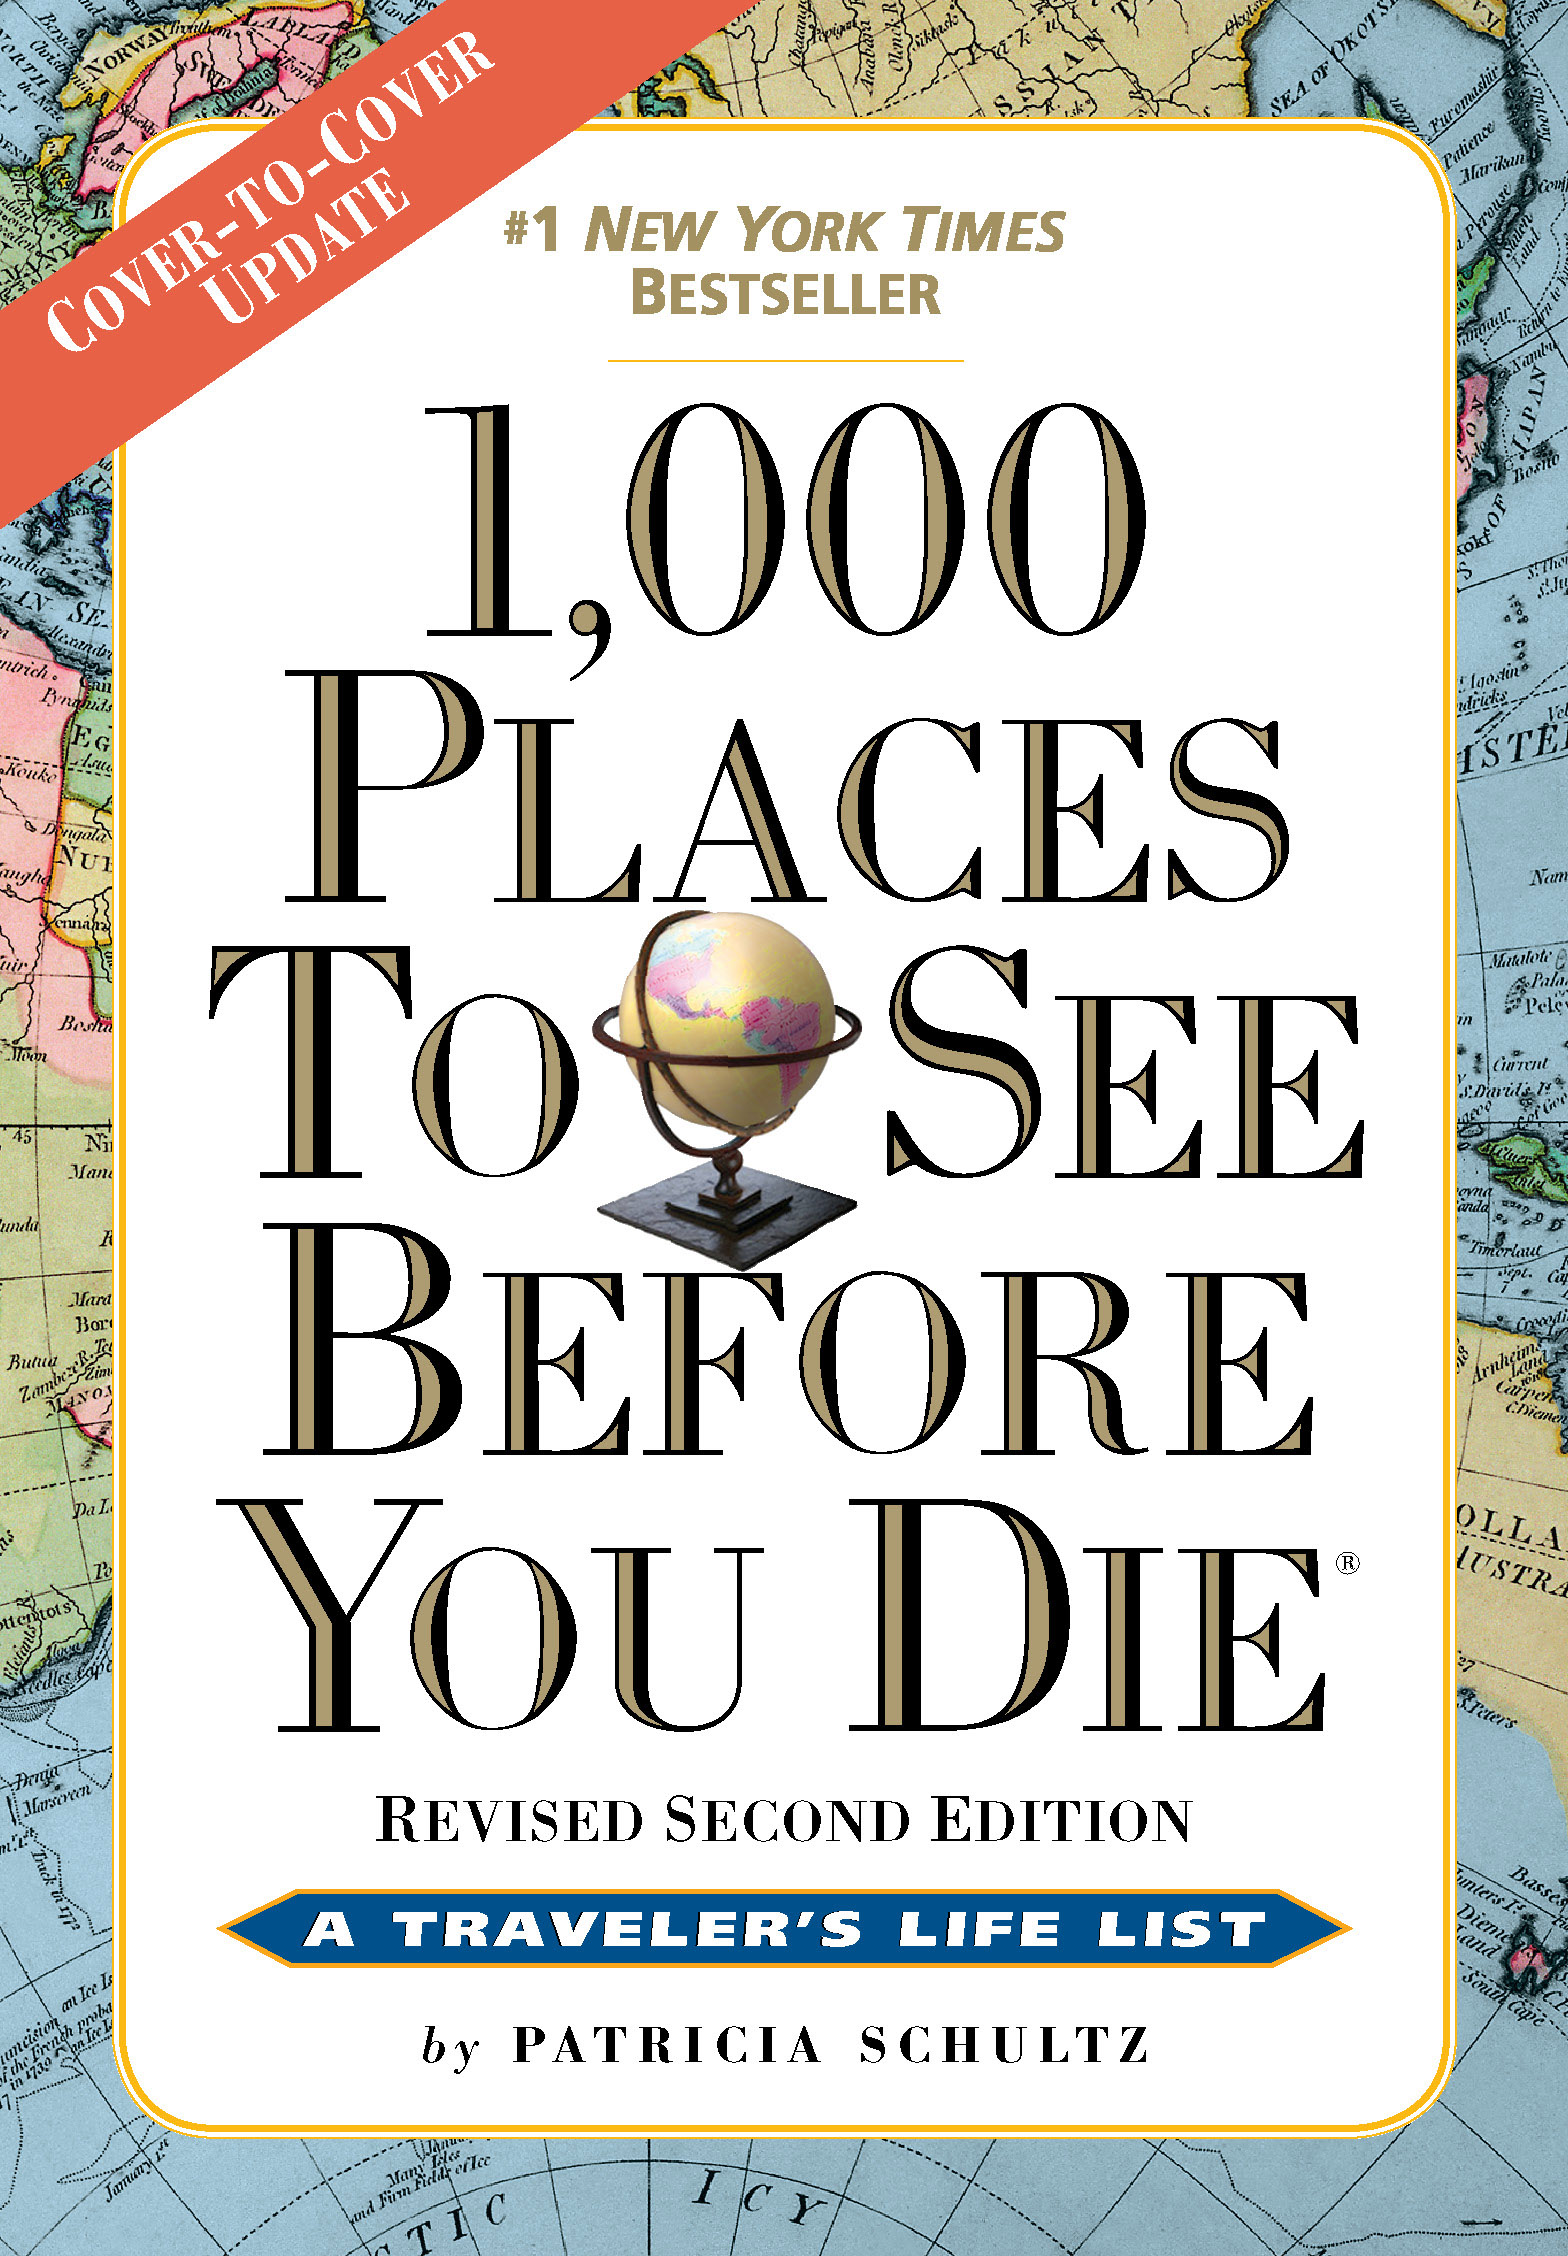 1,000 Places to See Before You Die. Revised Second Edition. By Patricia  Schultz. View Full Size Image